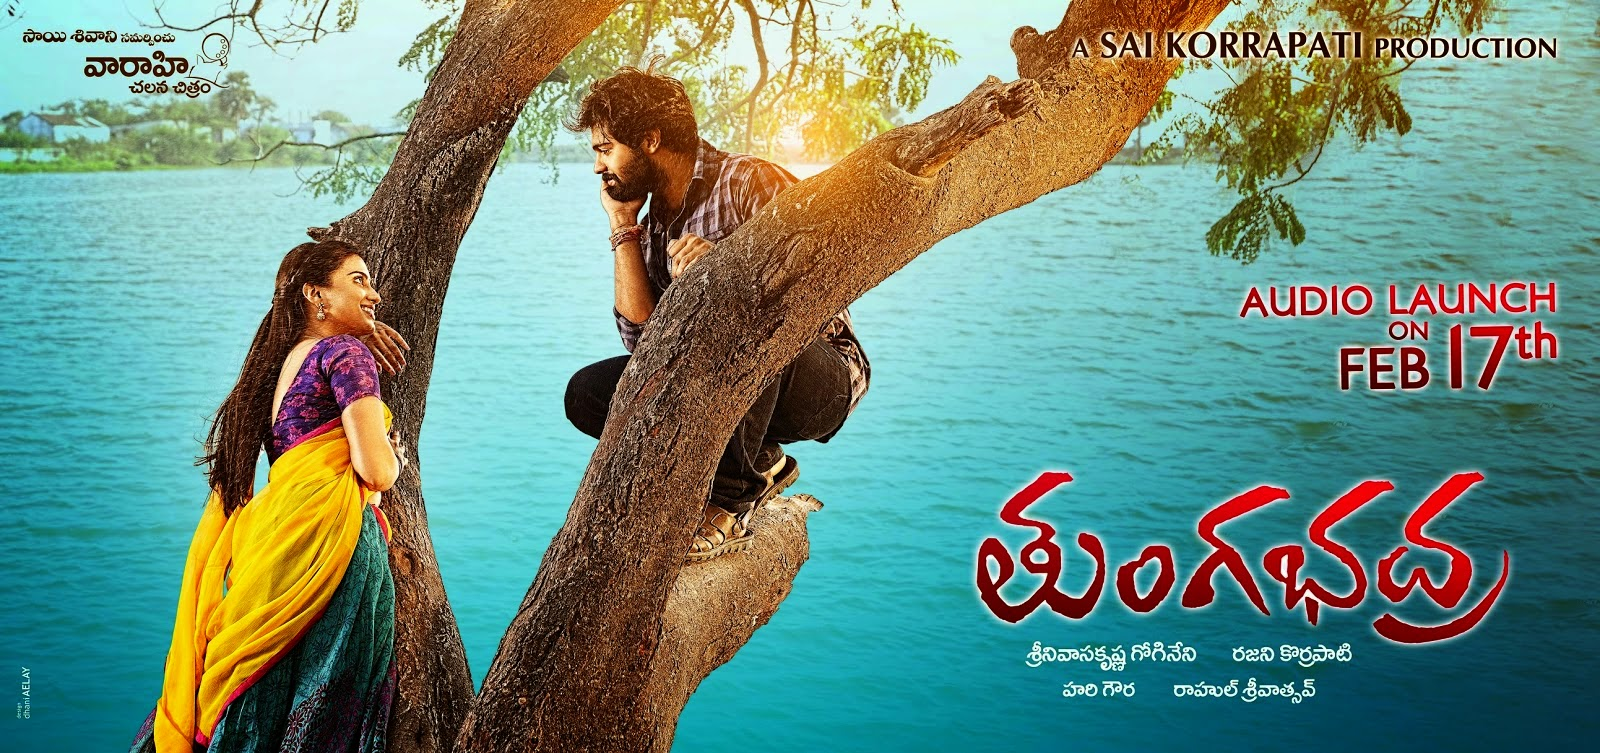 Thungabhadra Telugu Movie First Look Poster and HD Wallpapers